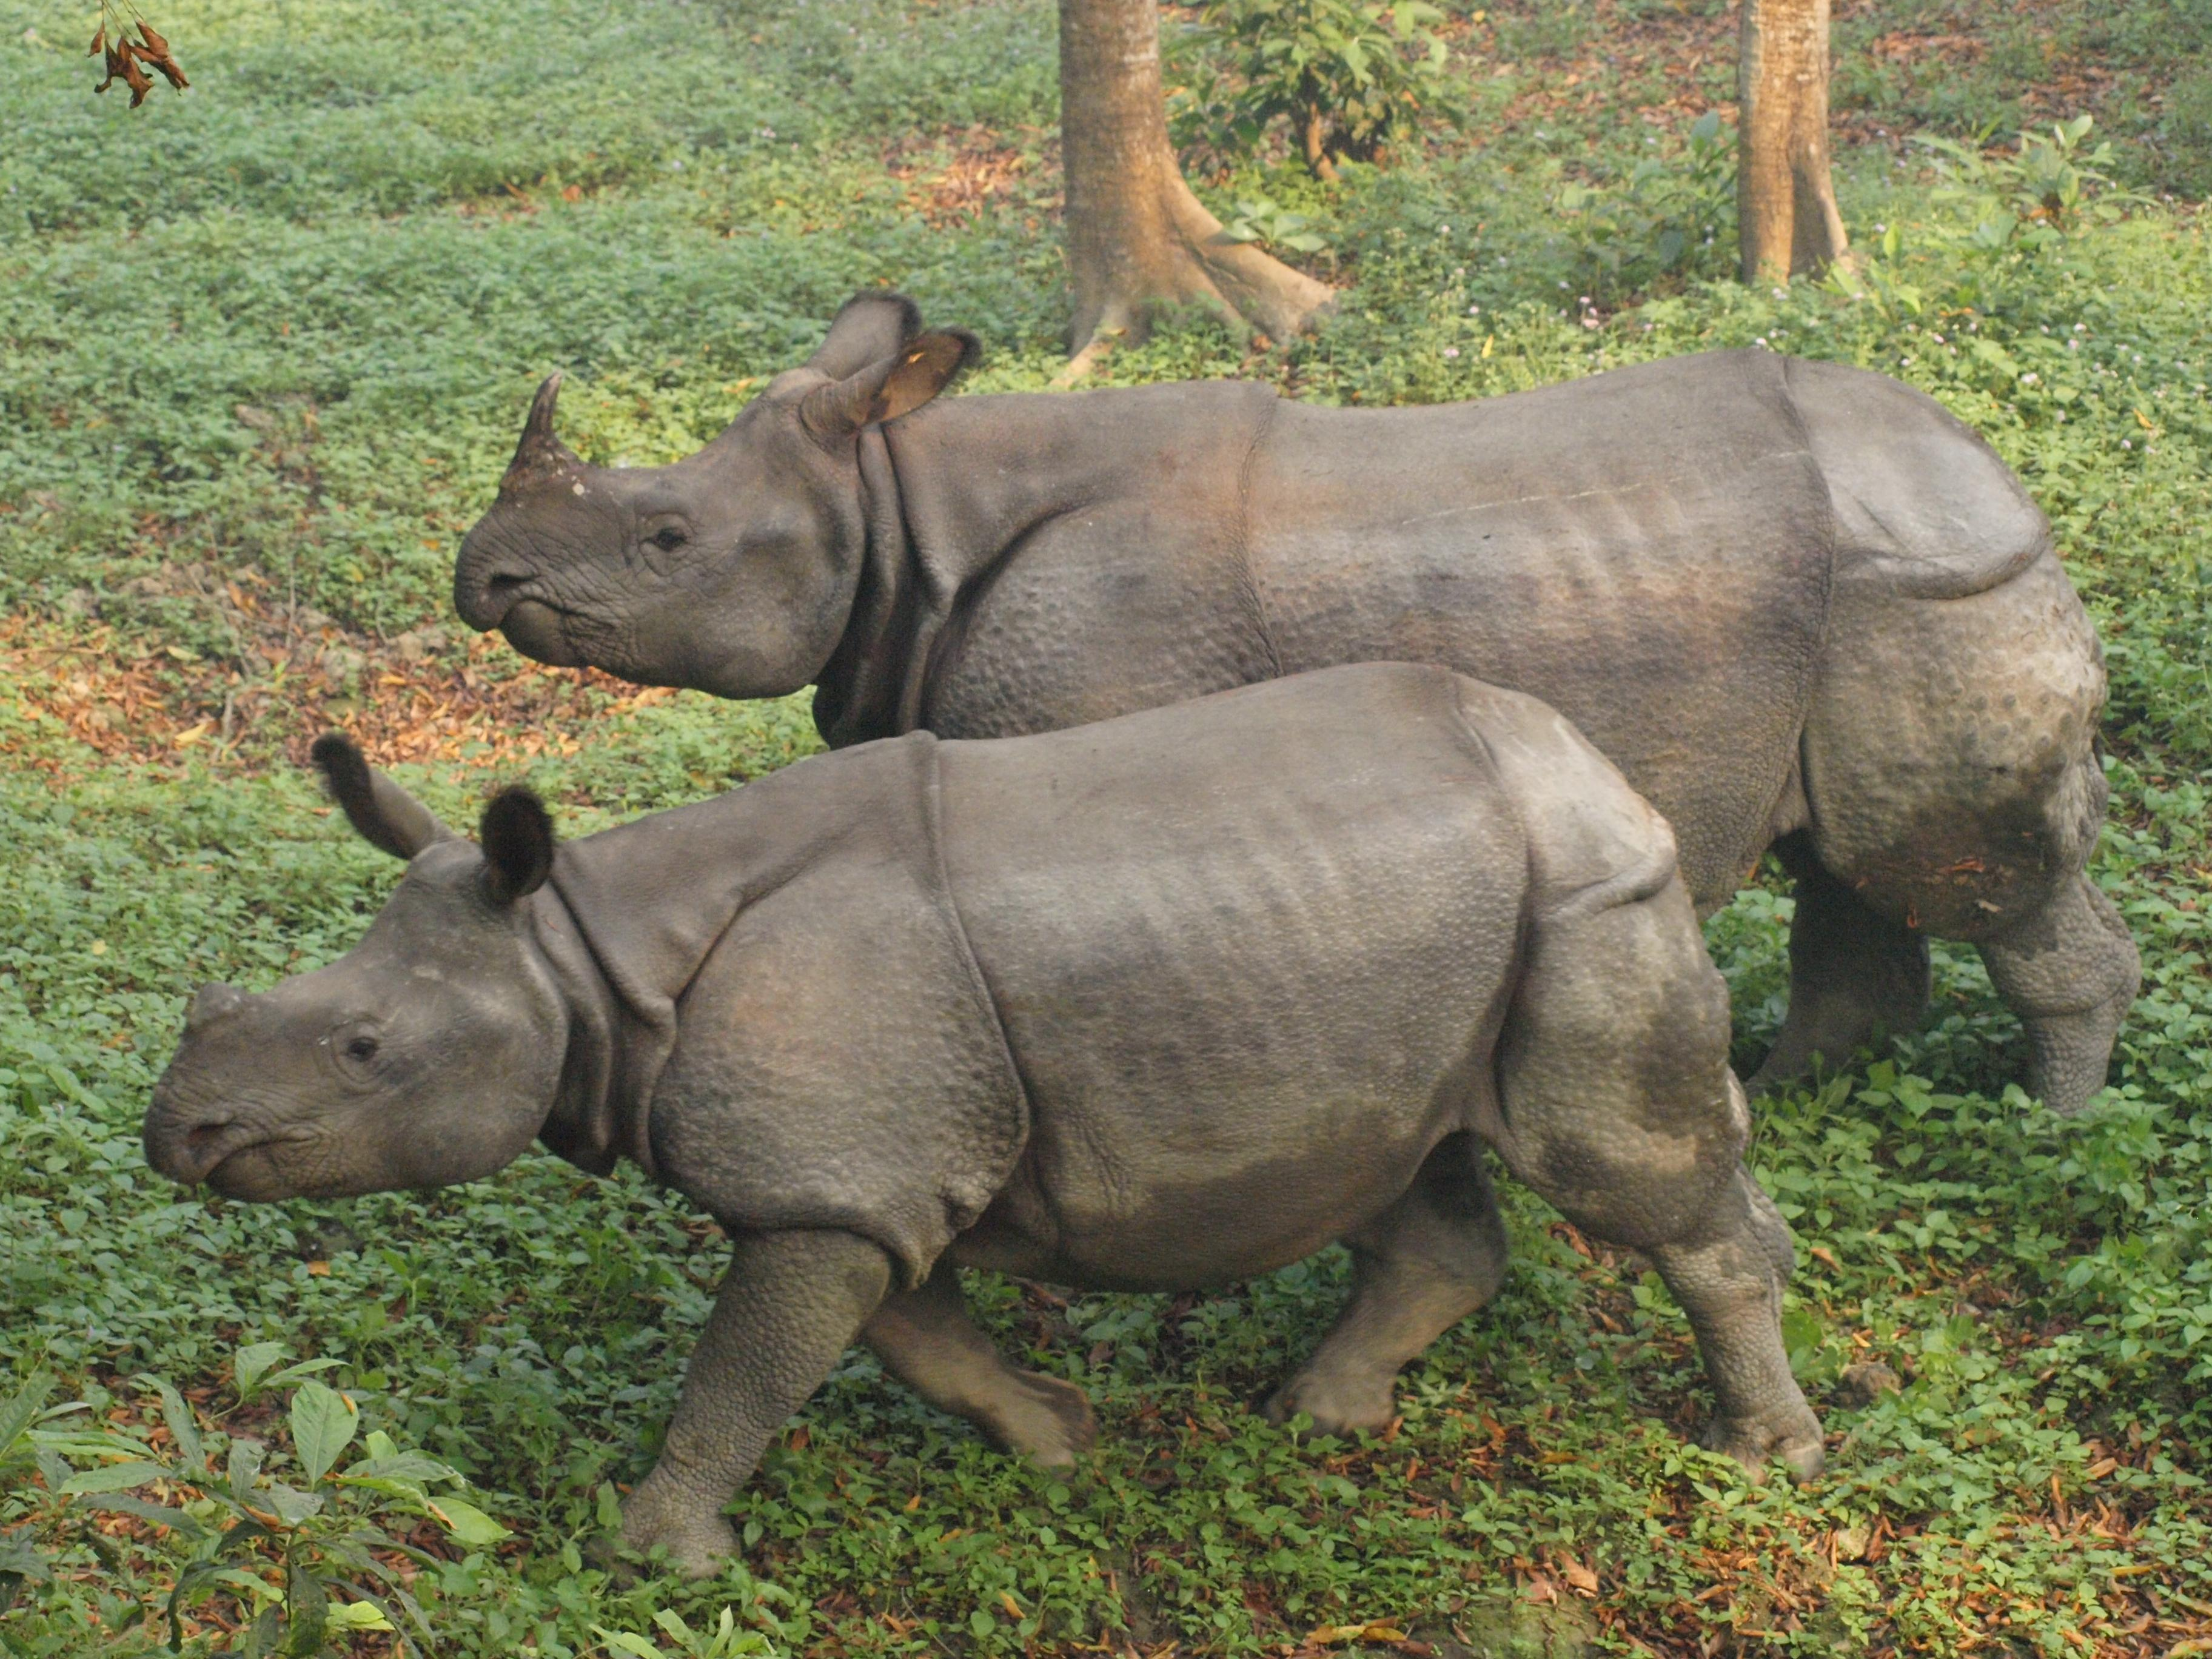 Nepal, Chitwan National Park, One Horned Rhino